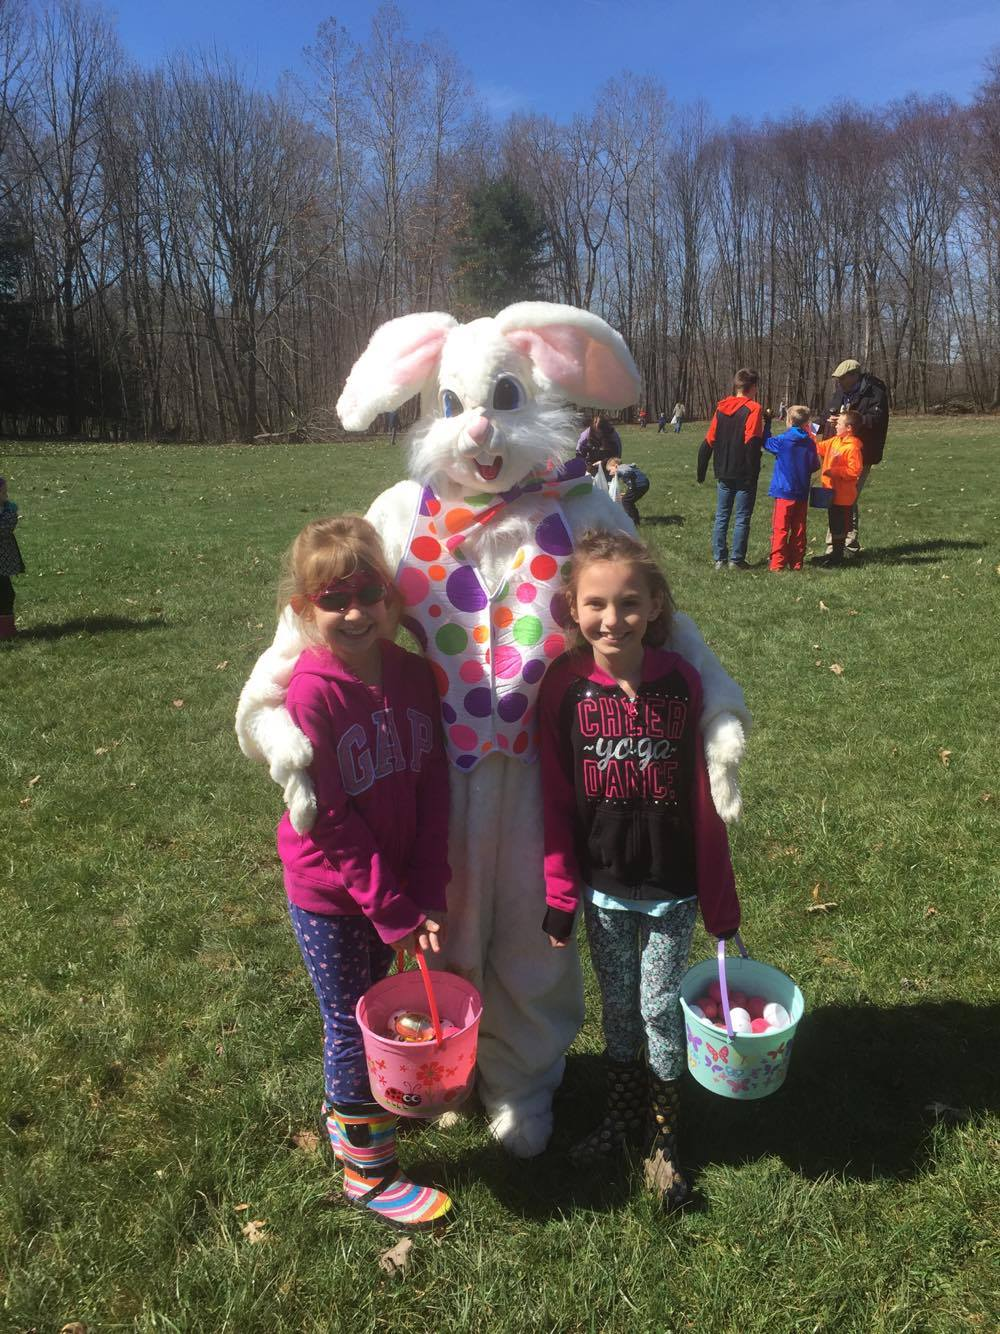 Kaelynn and Emma Fitzsimmons with the Easter Bunny at the Marianne Estates Egg Hunt. Submitted by Tamera Fitzsimmons.